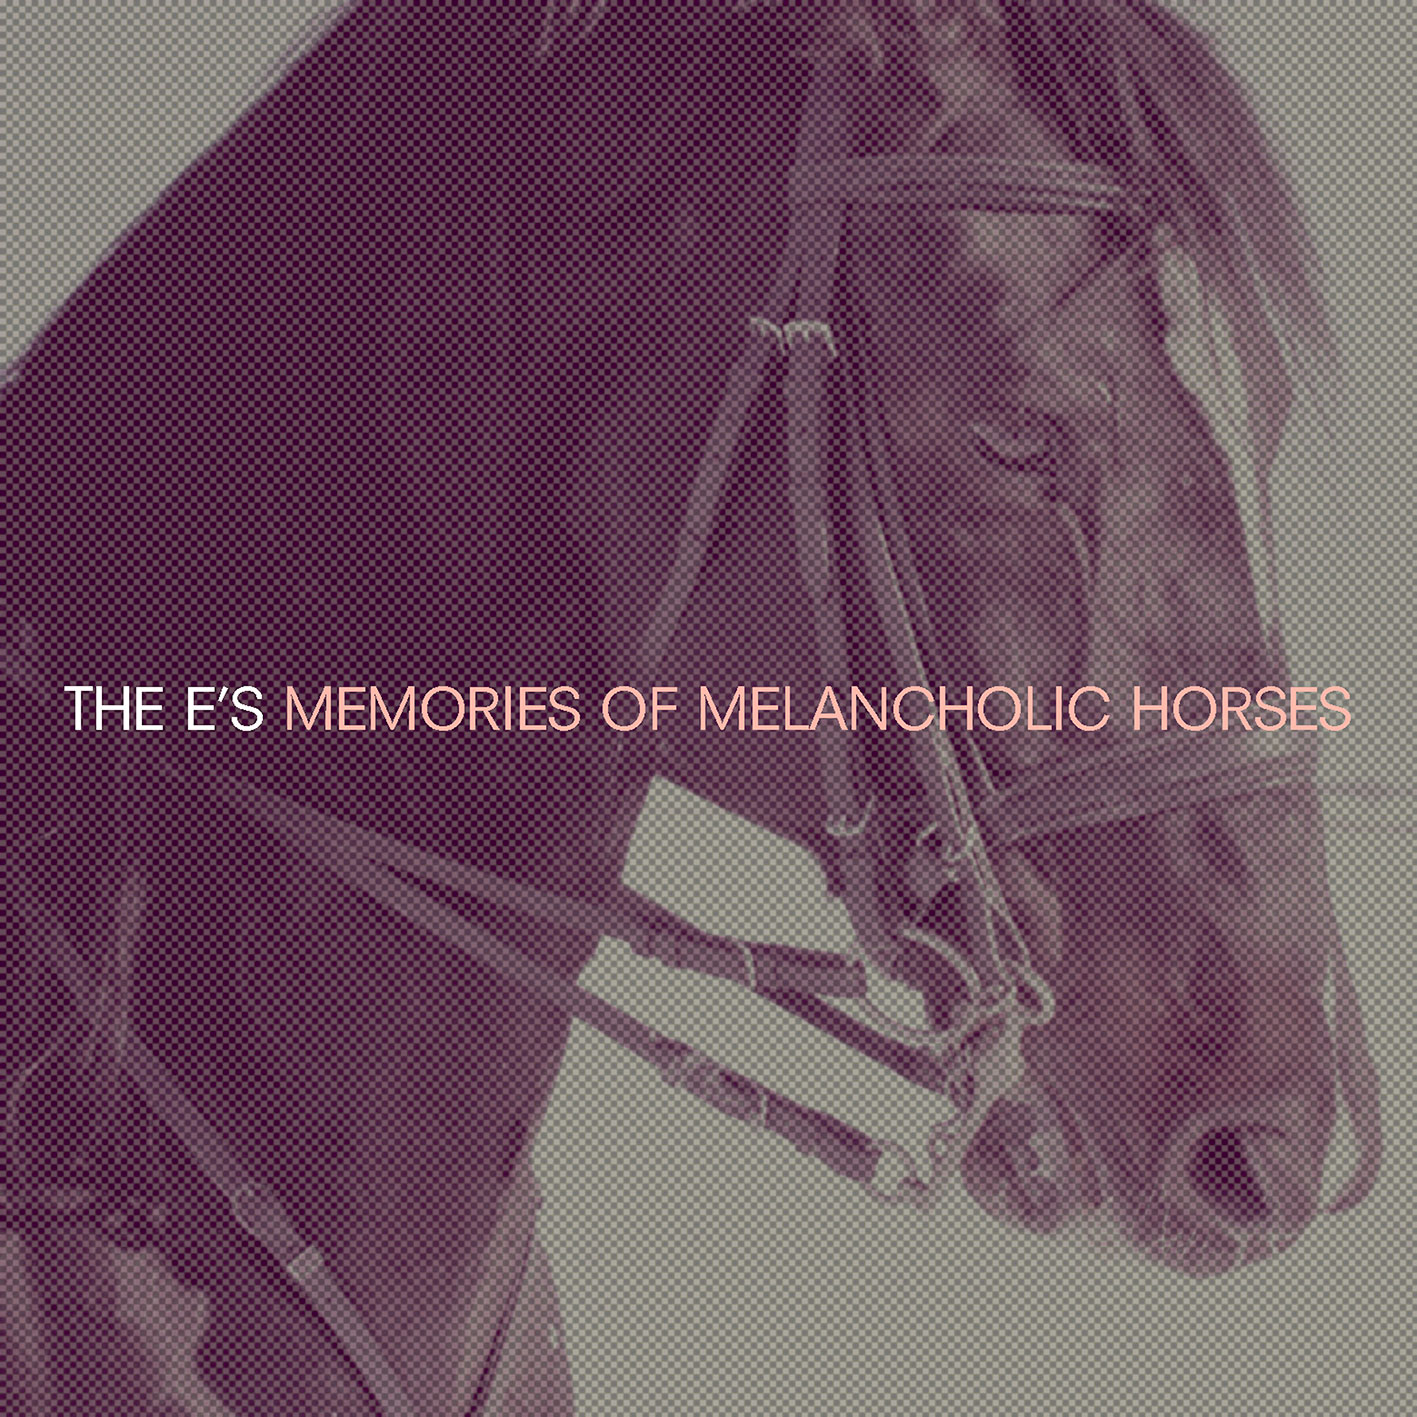 The-Es-Memories-of-Melancholic-Horses-Artwork-RGB.jpg